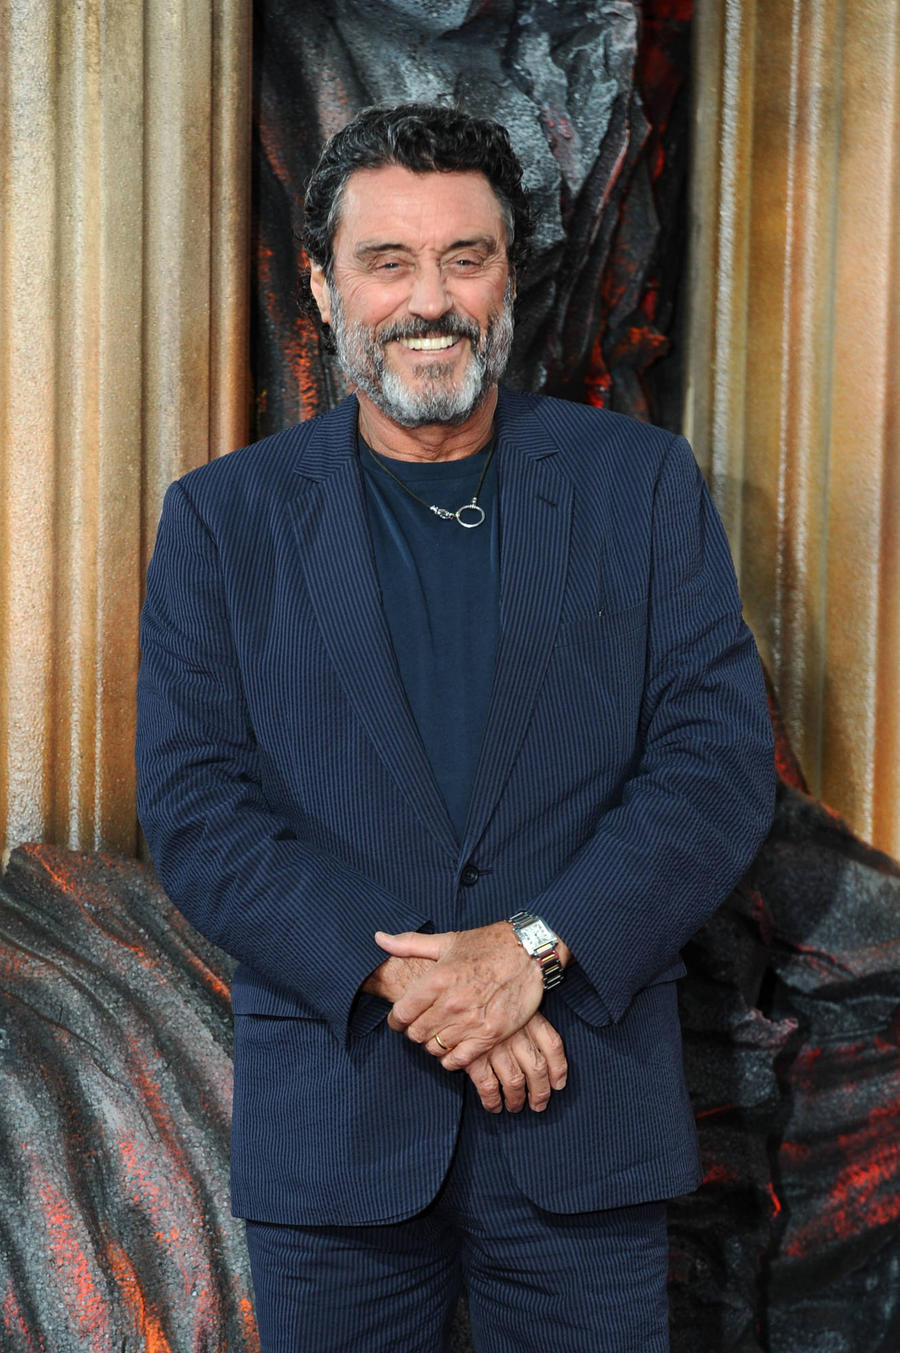 New Game Of Thrones Star Ian Mcshane Drops Huge Spoiler